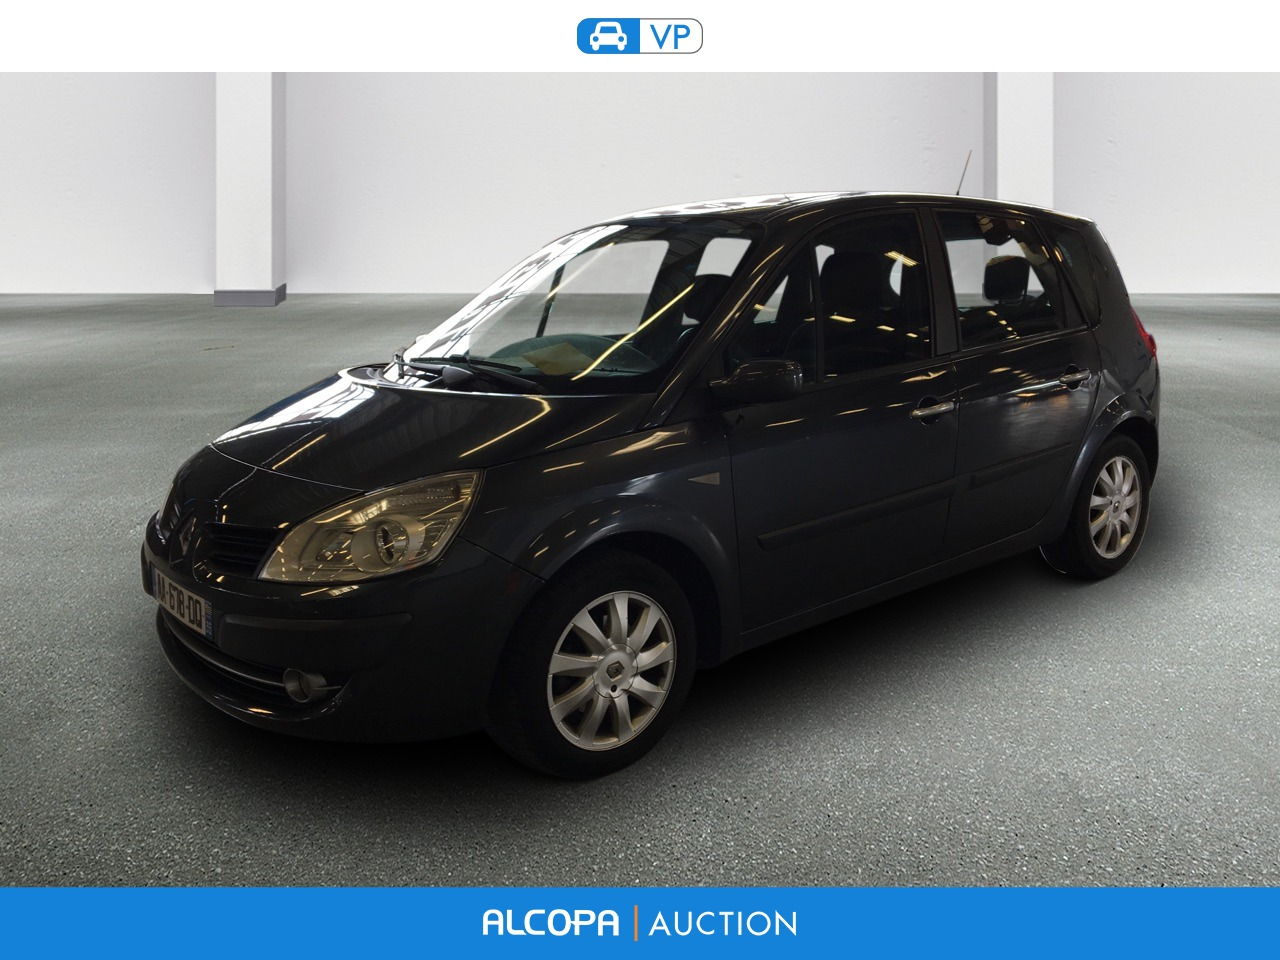 renault scenic 1 5 dci 105 eco2 dynamique alcopa auction. Black Bedroom Furniture Sets. Home Design Ideas